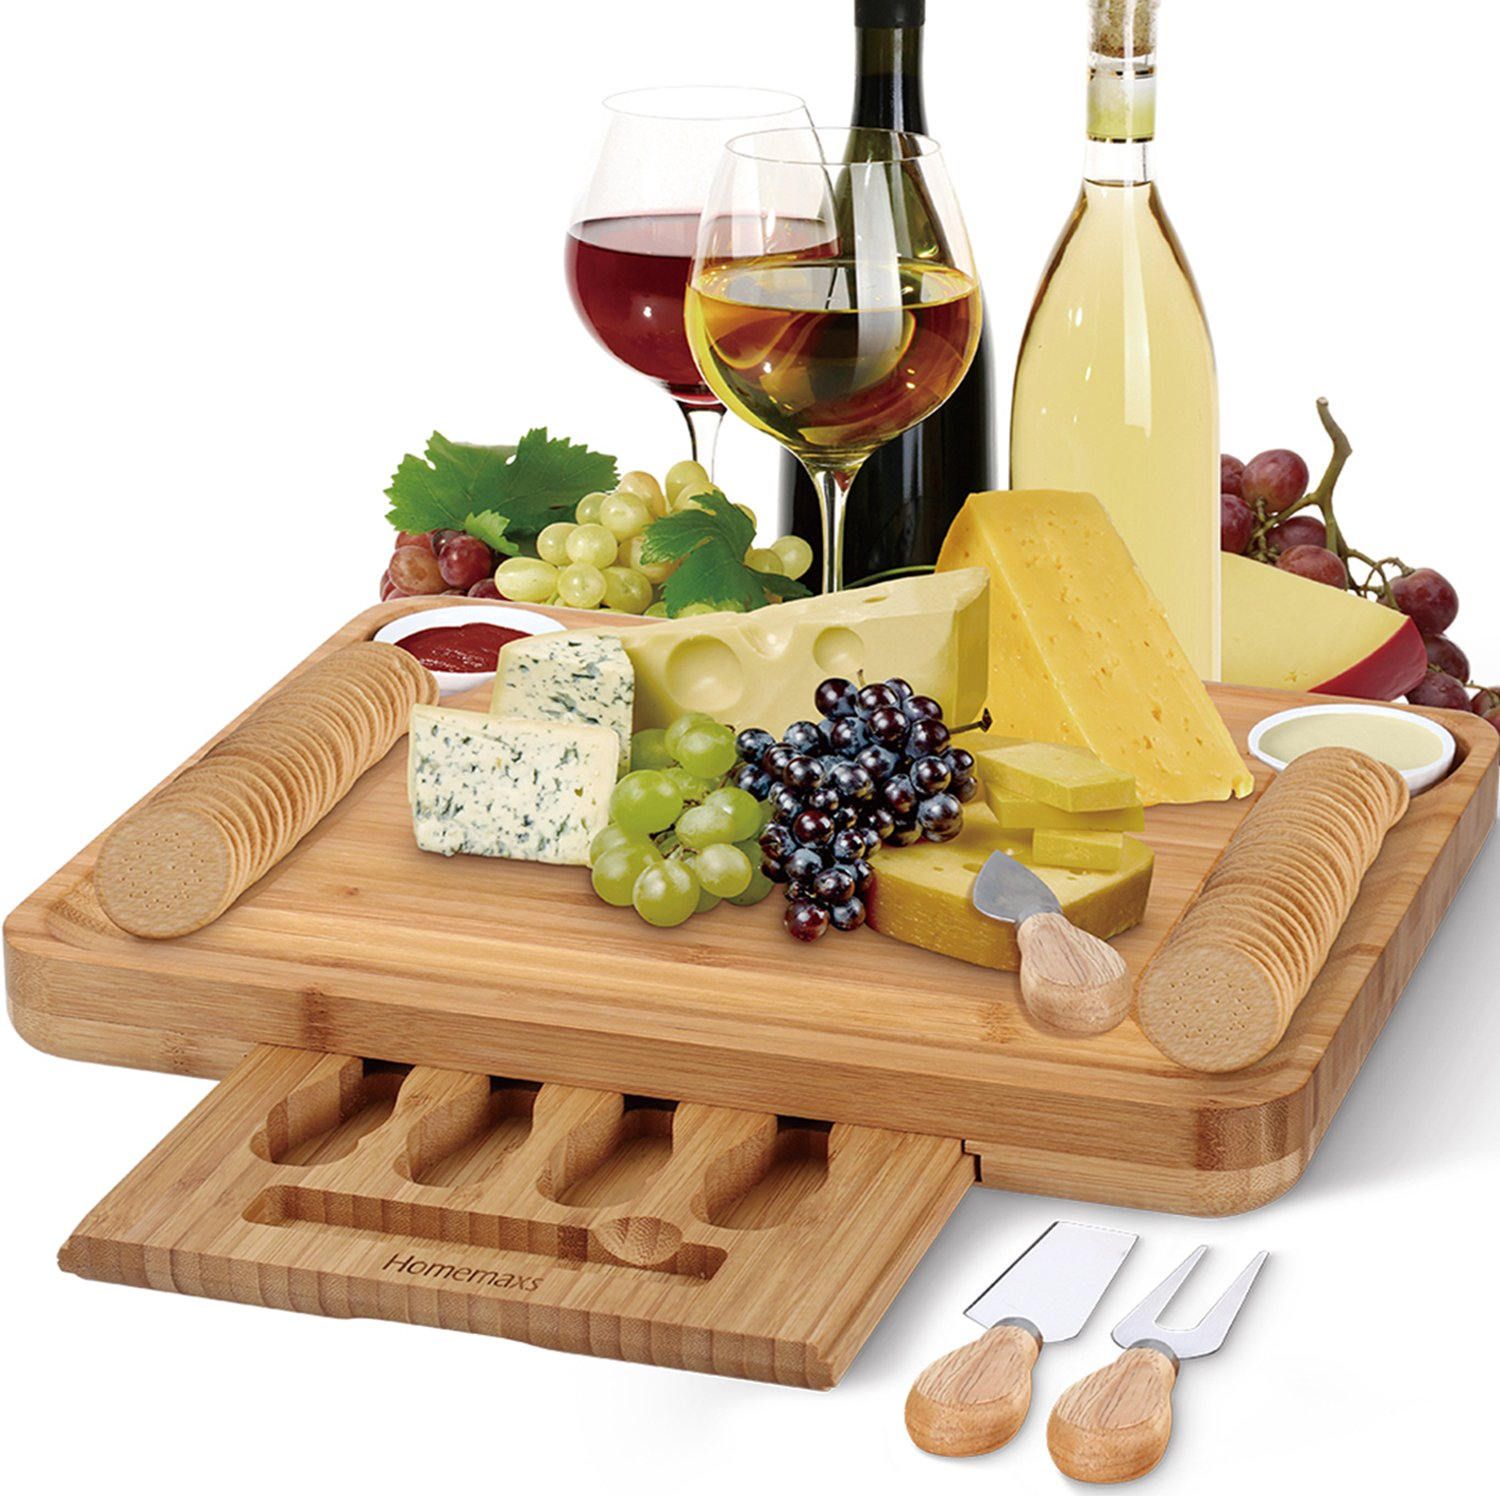 Bamboo Cheese Board with Cutlery Set, Larger and Thicker Charcuterie Platter & Meat Server with Slide-Out Drawer, 4 Stainless Steel Knife, Server Set - Beautiful Package Personalized Gifts